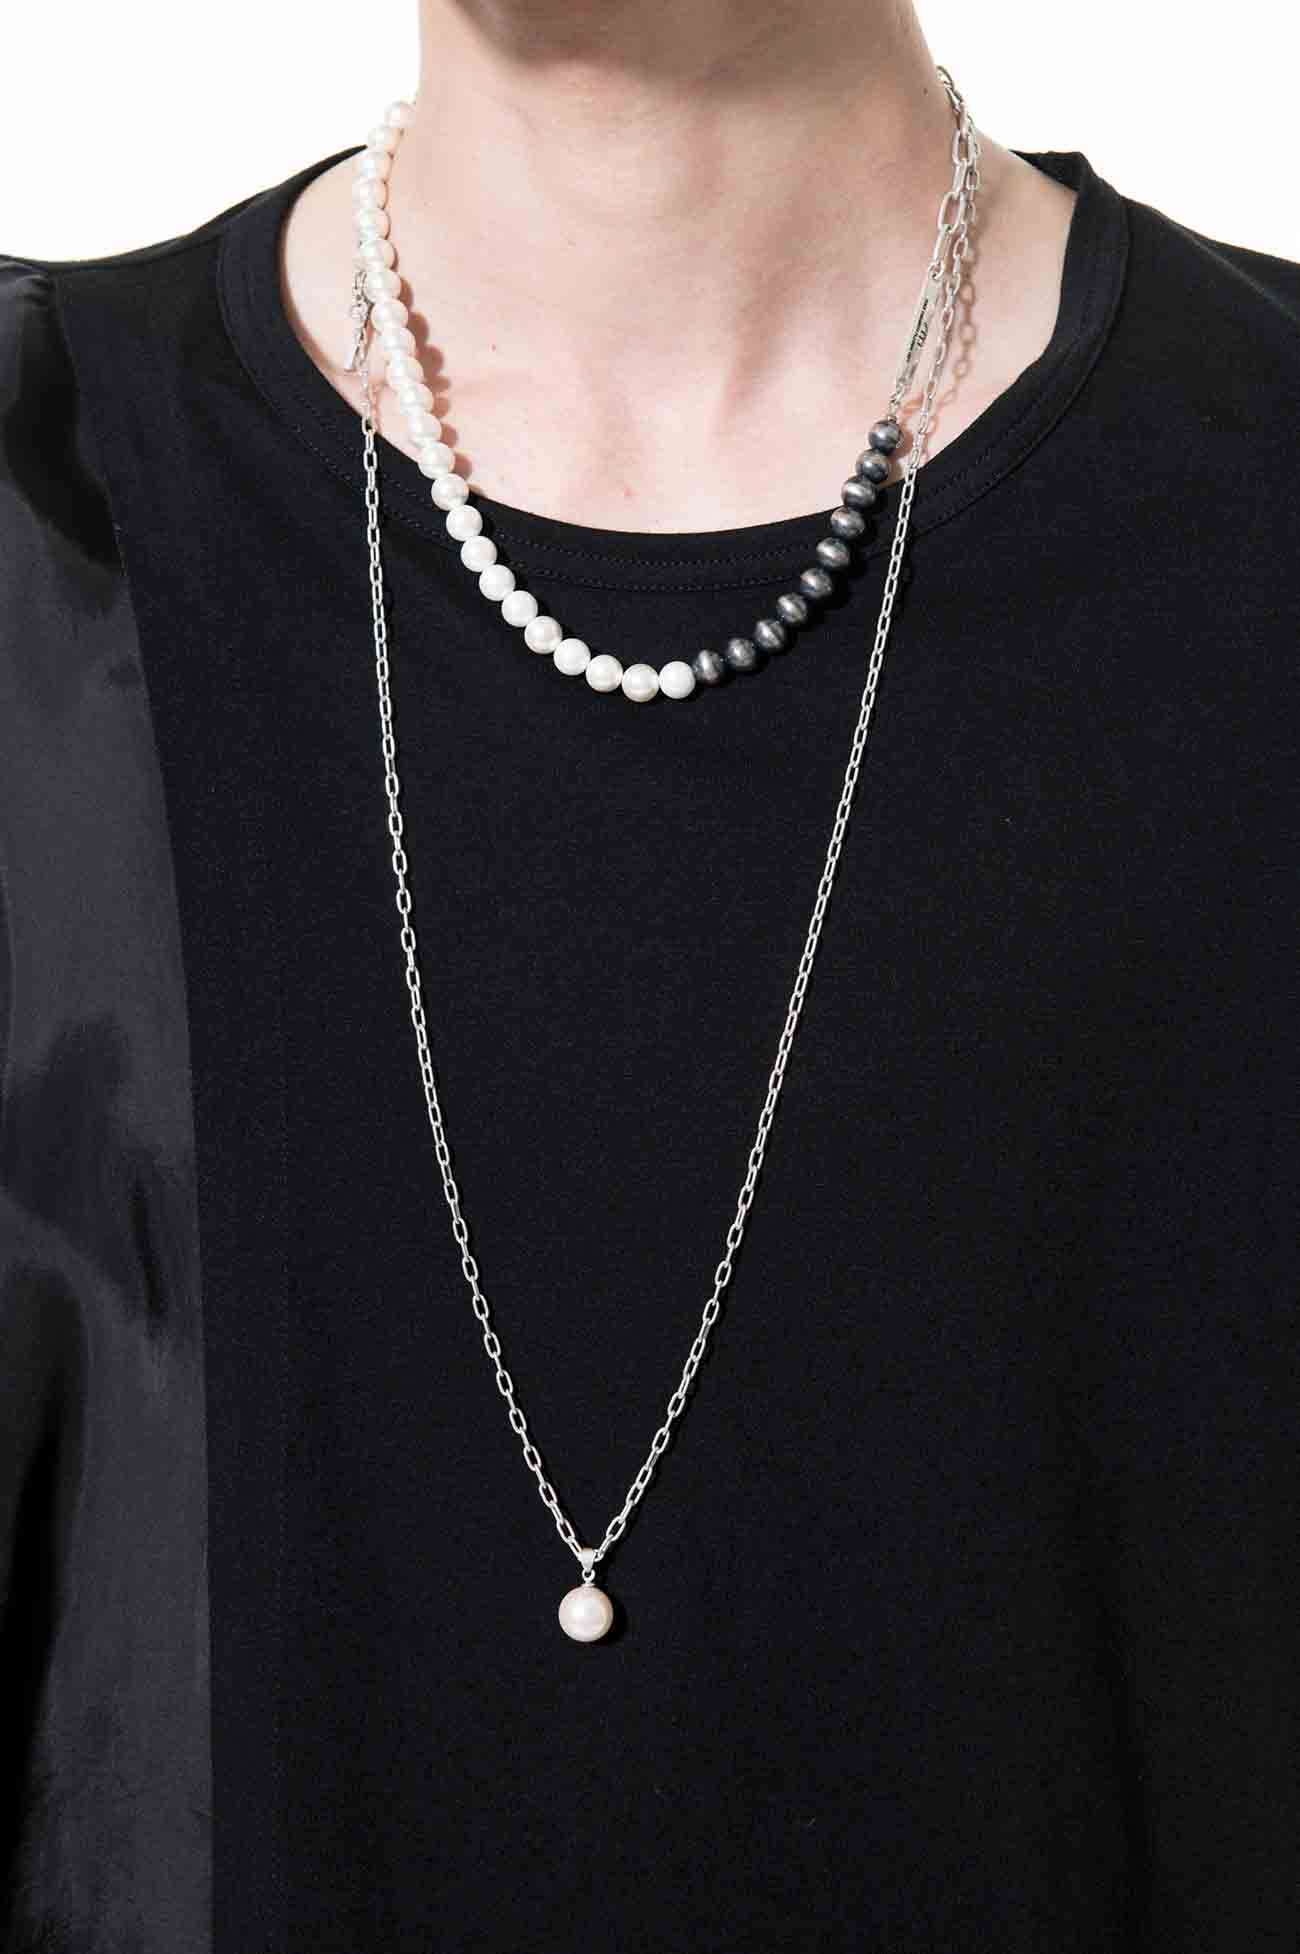 12mm One-top Pearl Necklace